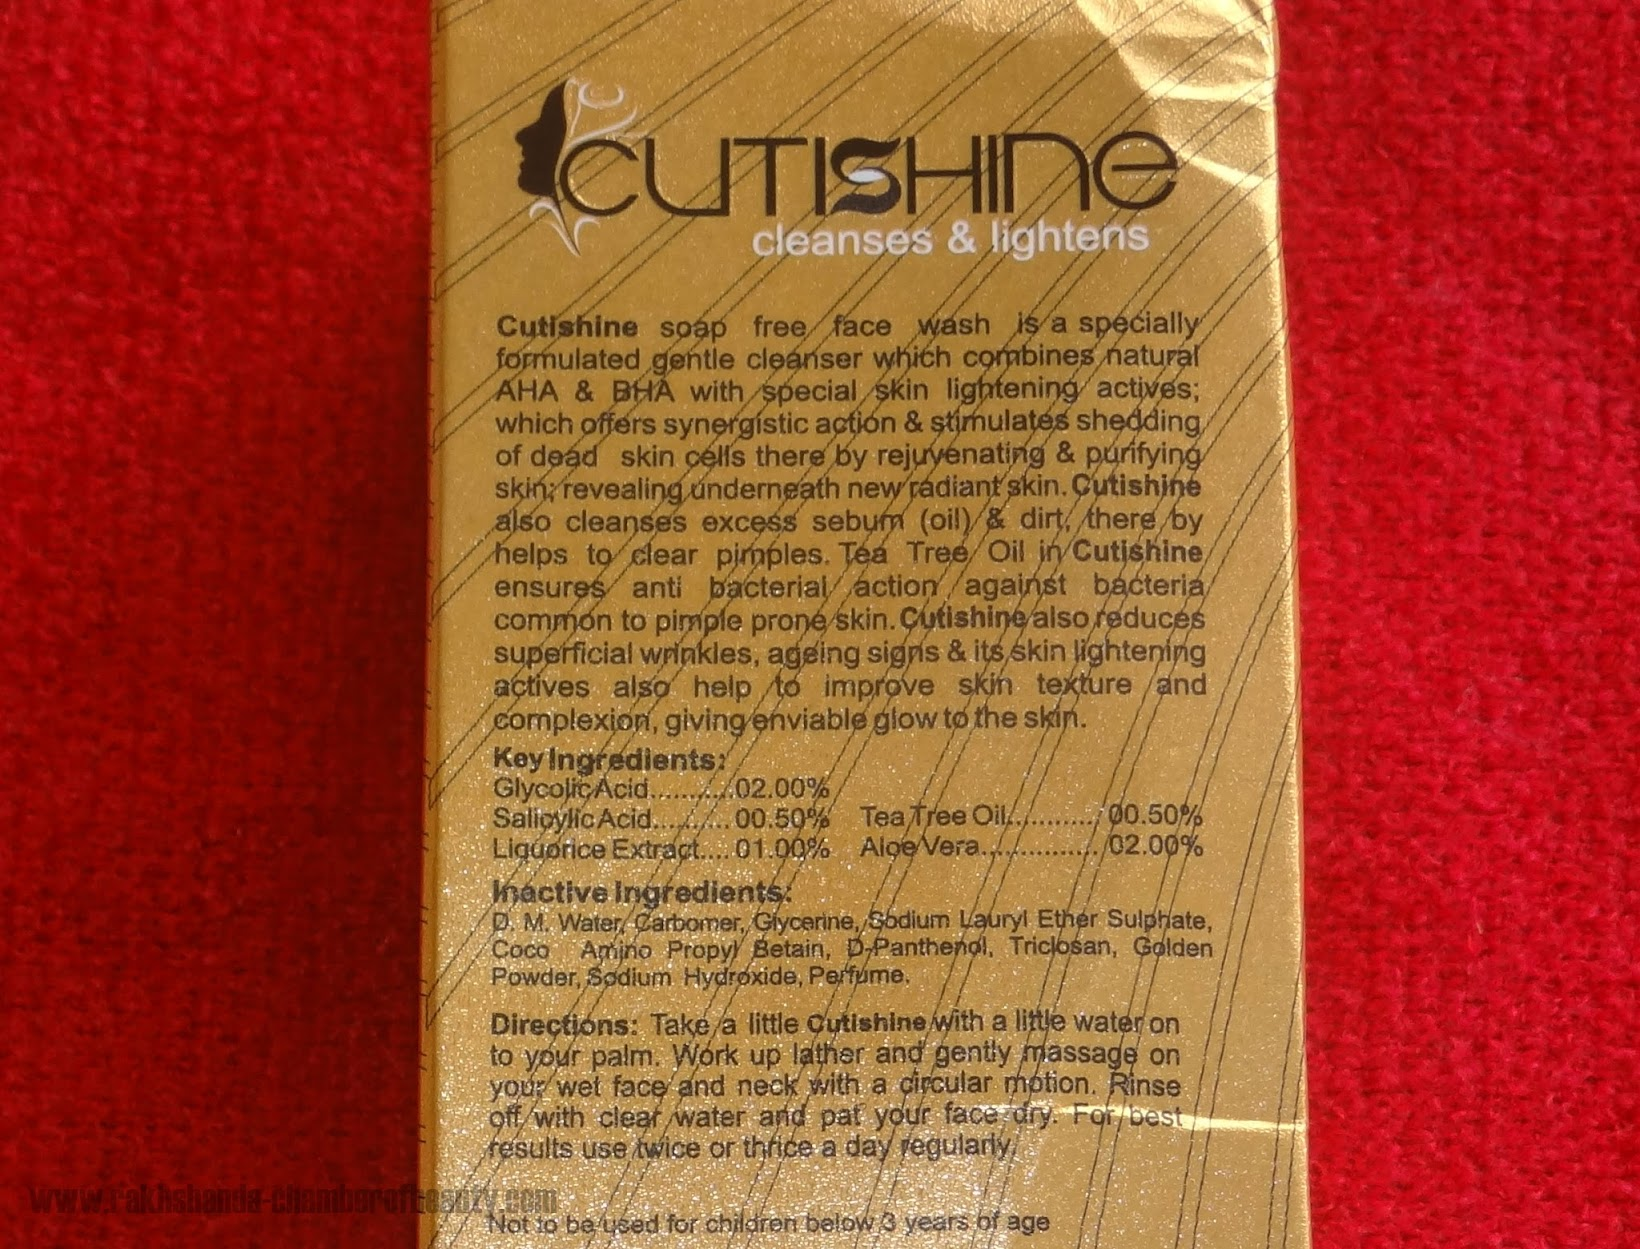 Ethicare Remedies Cutishine Face Wash review, cleansing face wash, cleanser for brightening, Cutishine face wash, Ethicare, Ethicare Remedies face wash review, Indian beauty blogger, face wash for oily/combination skin, Chamber Of Beauty, Cutishine face wash review, bright skin